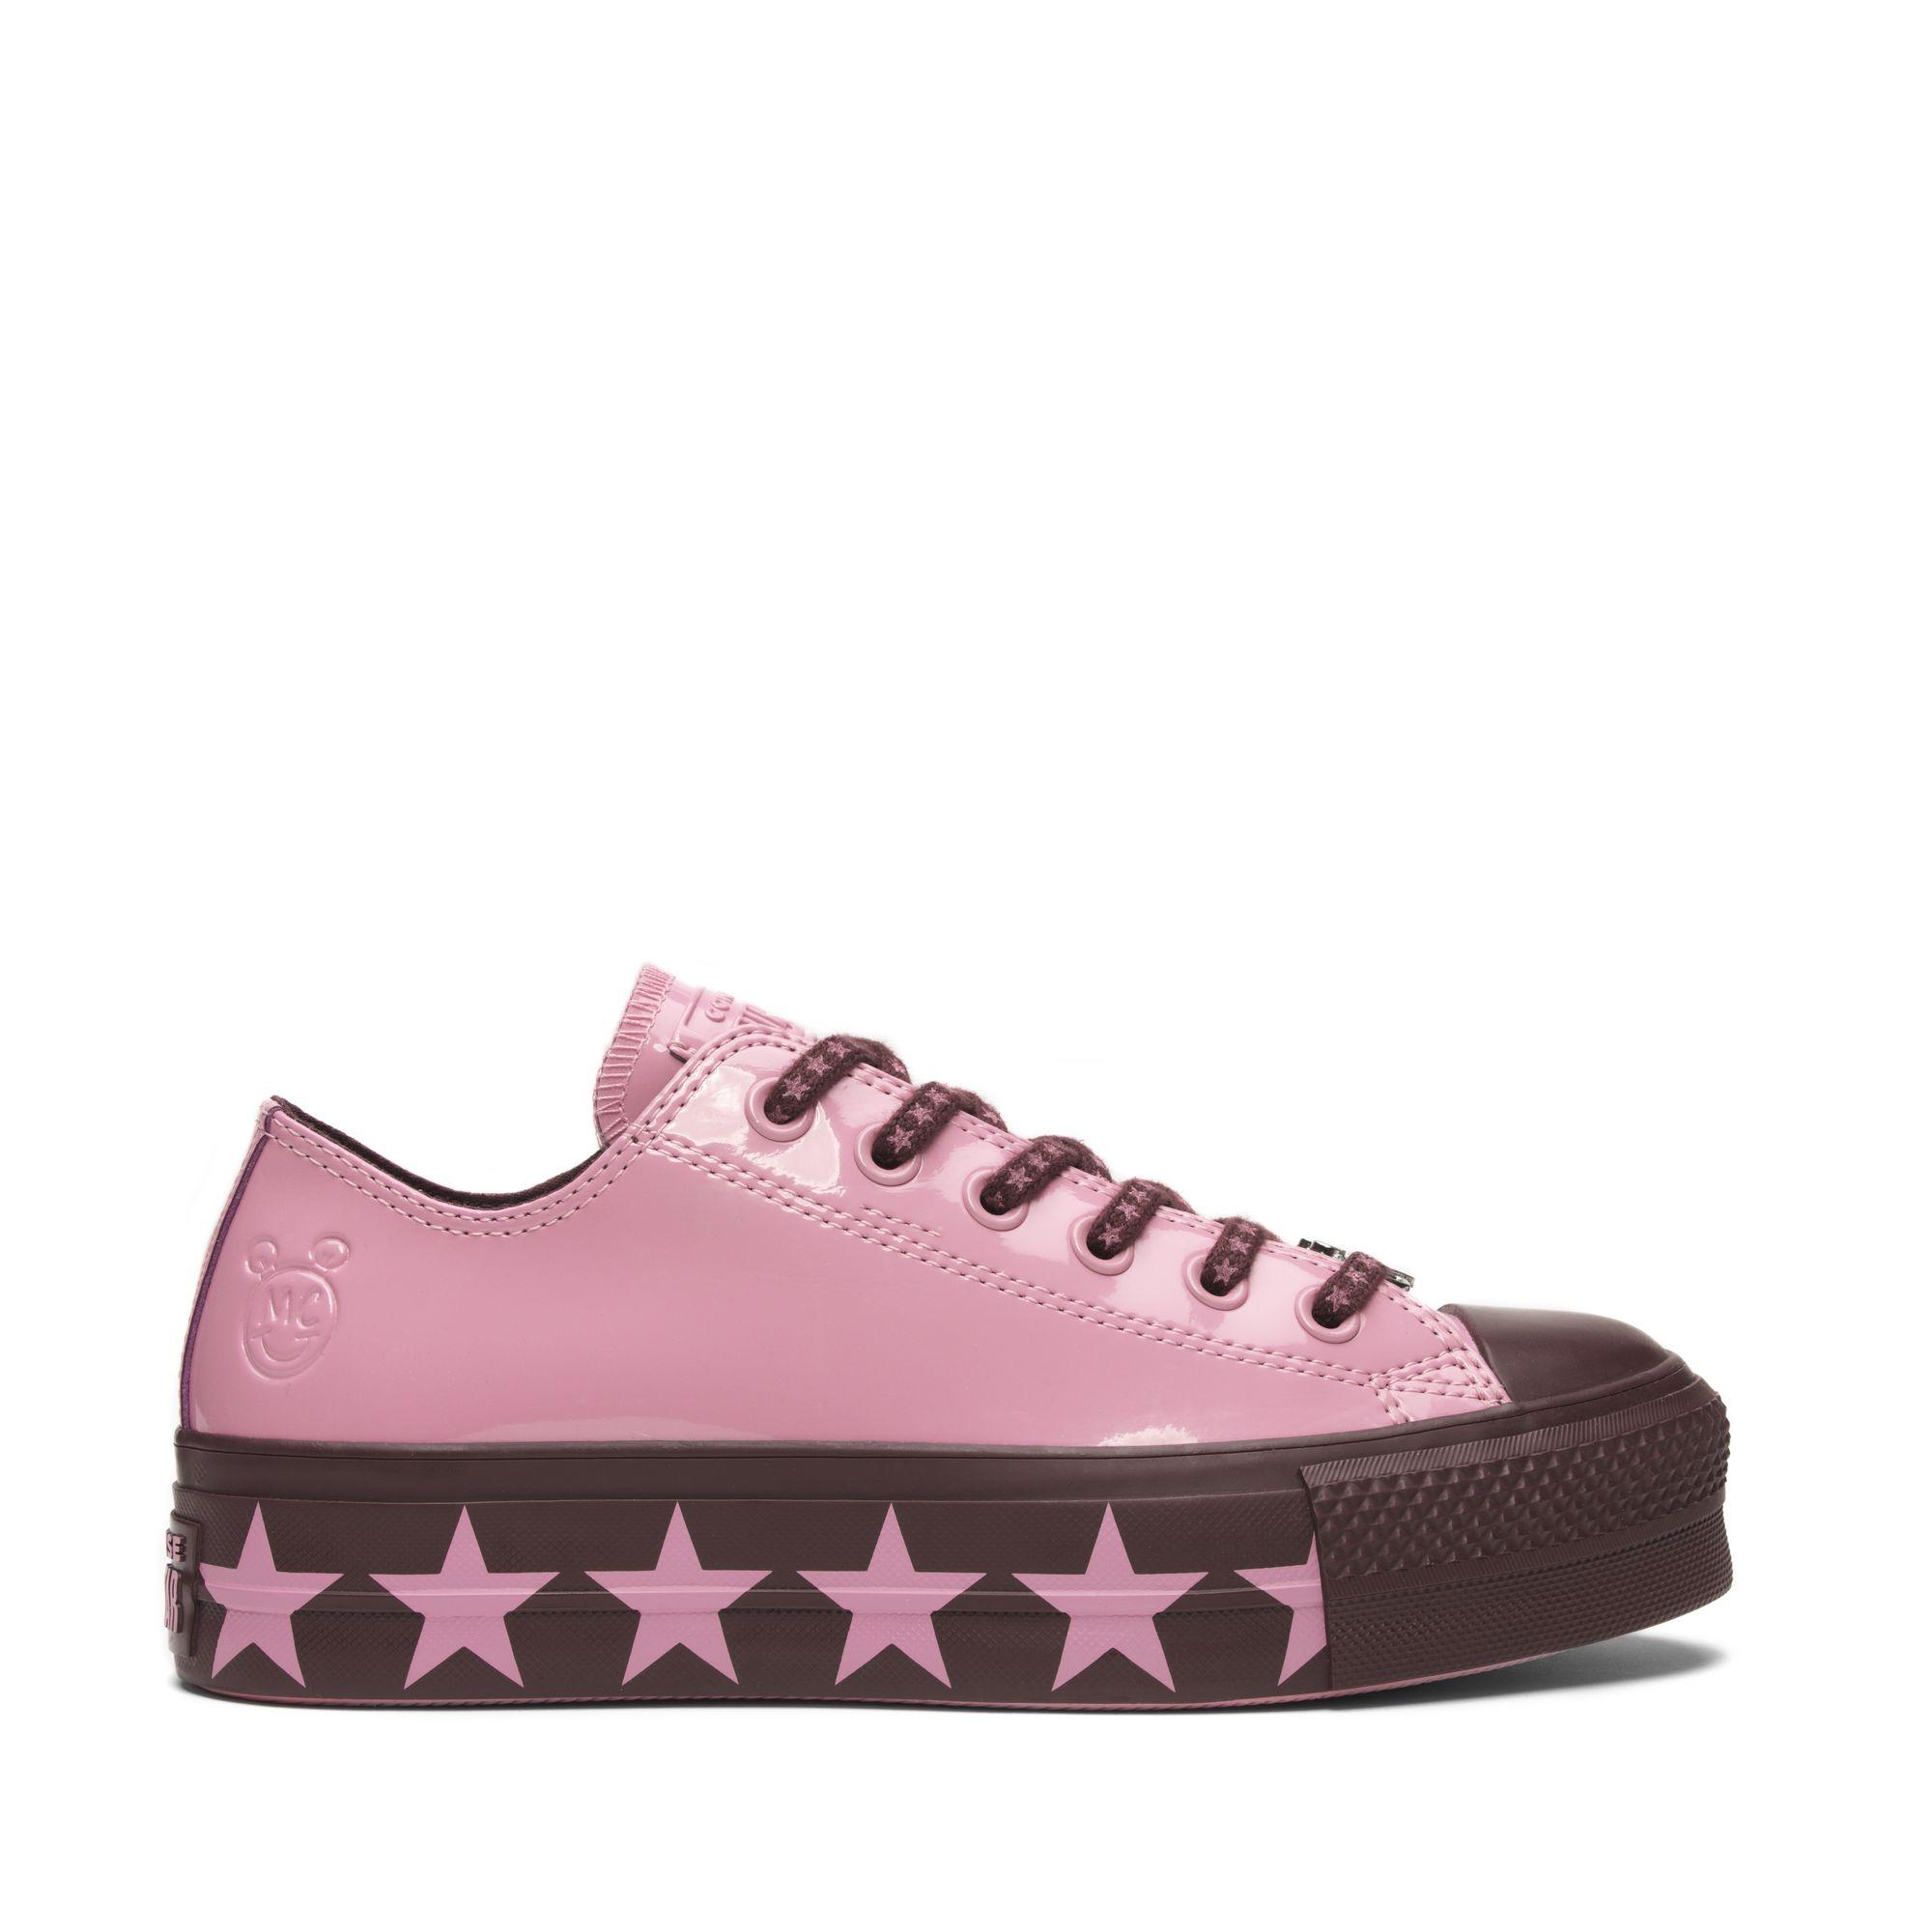 495995e13f4  SALE  CONVERSE MILEY CYRUS CHUCK TAYLOR ALL STAR LIFT OX - PINK DARK